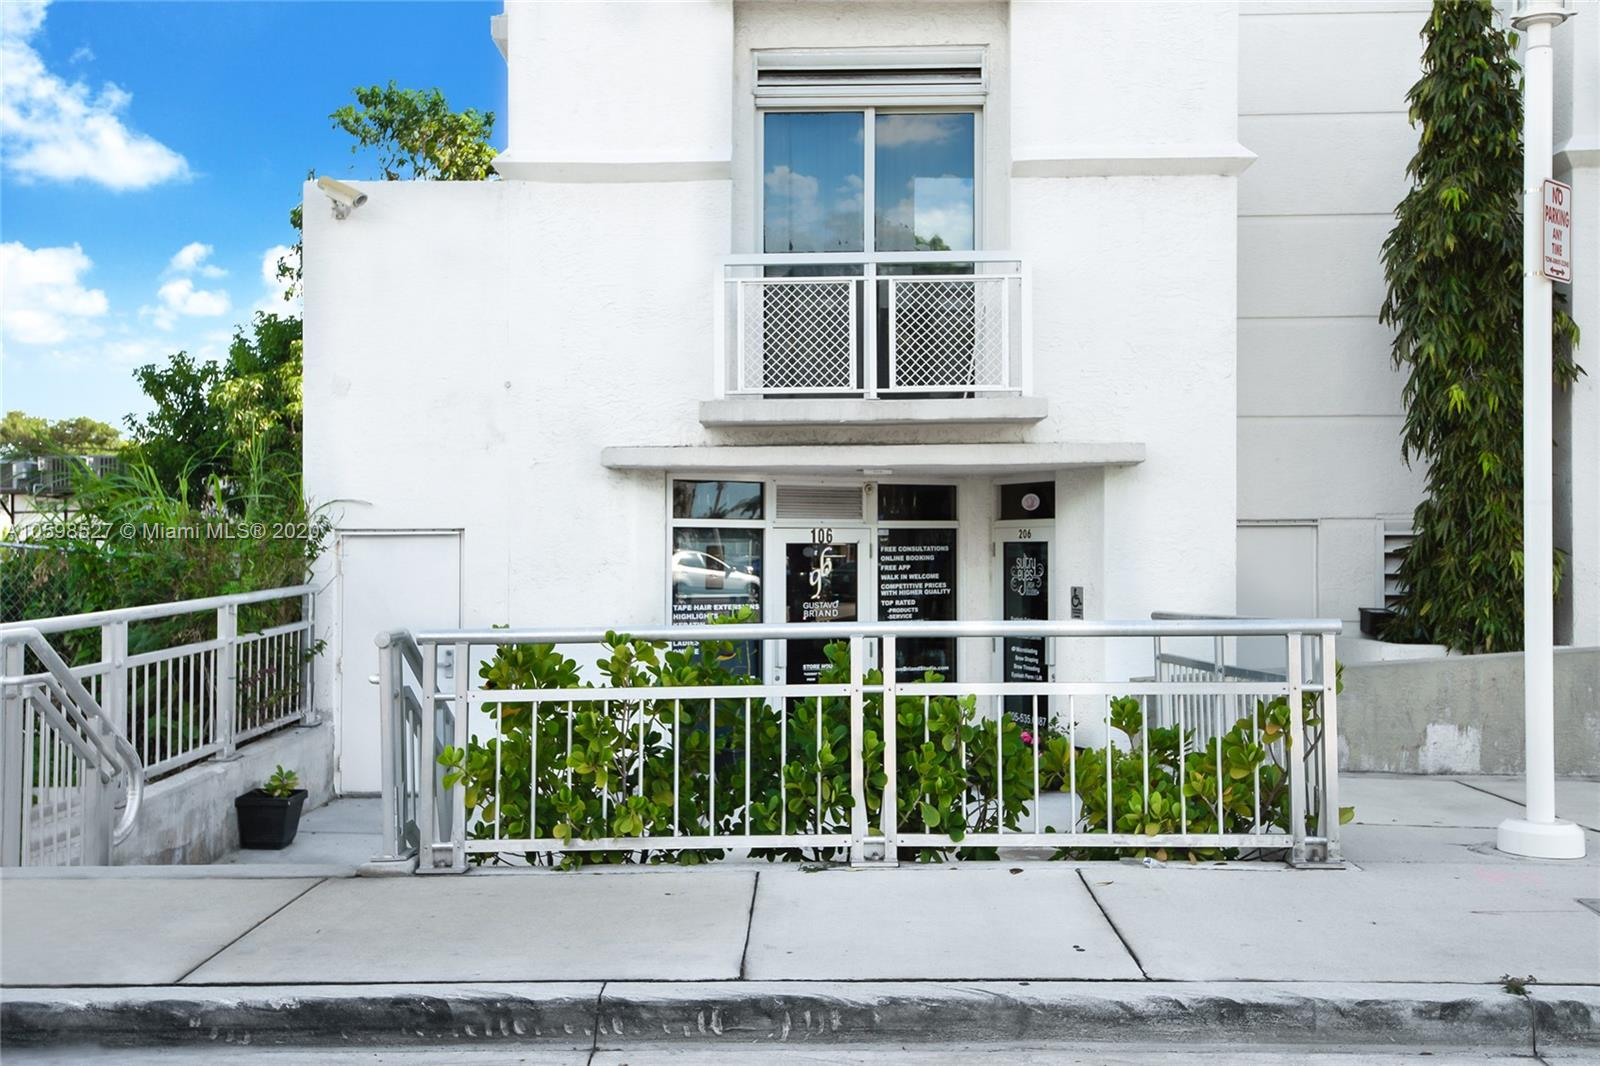 1701 Sunset Harbor Dr # S206, Miami Beach, Florida 33139, ,Commercial Sale,For Sale,1701 Sunset Harbor Dr # S206,A10598527